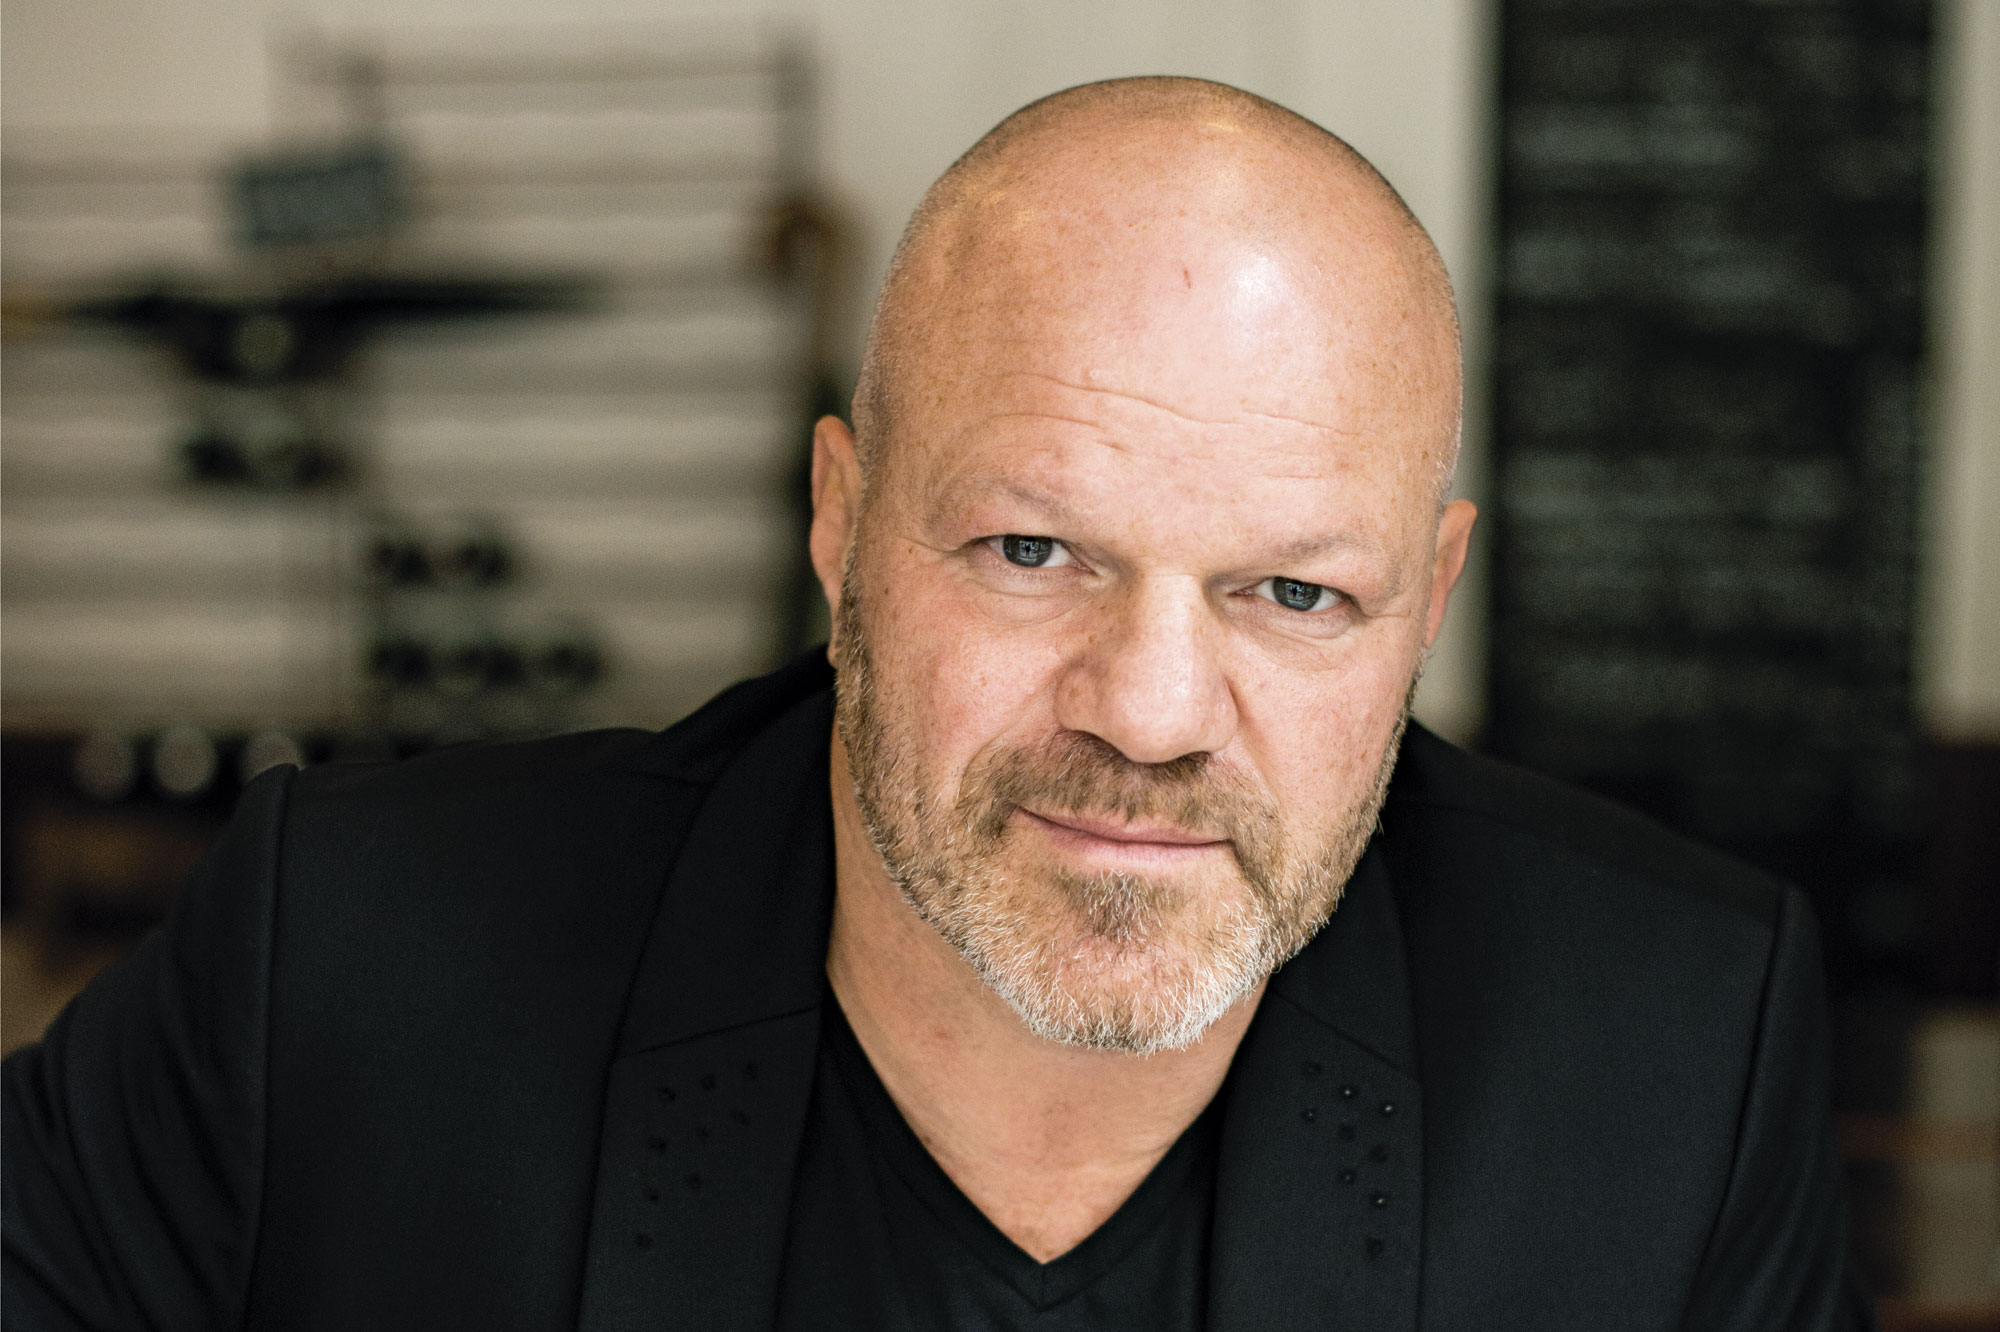 Objectif top chef philippe etchebest je me retrouve ko - Cuisine philippe etchebest ...